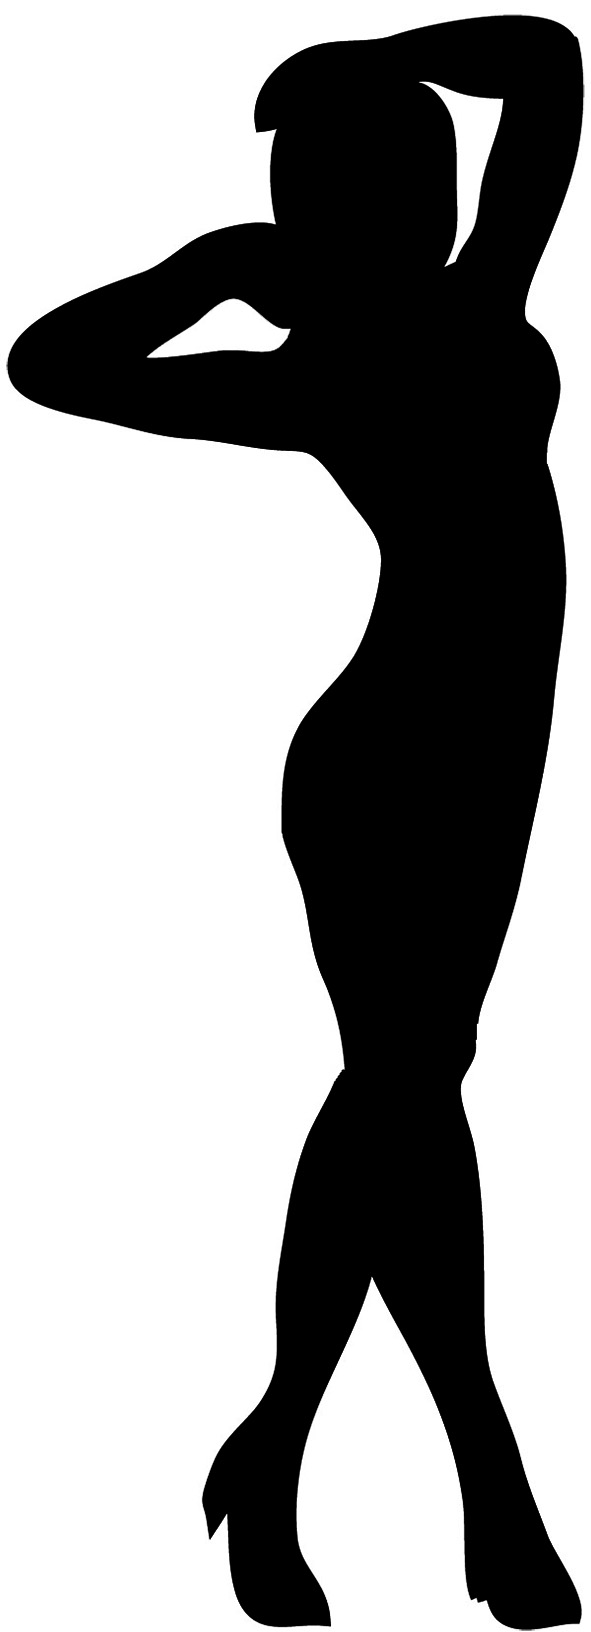 591x1632 Female Silhouette